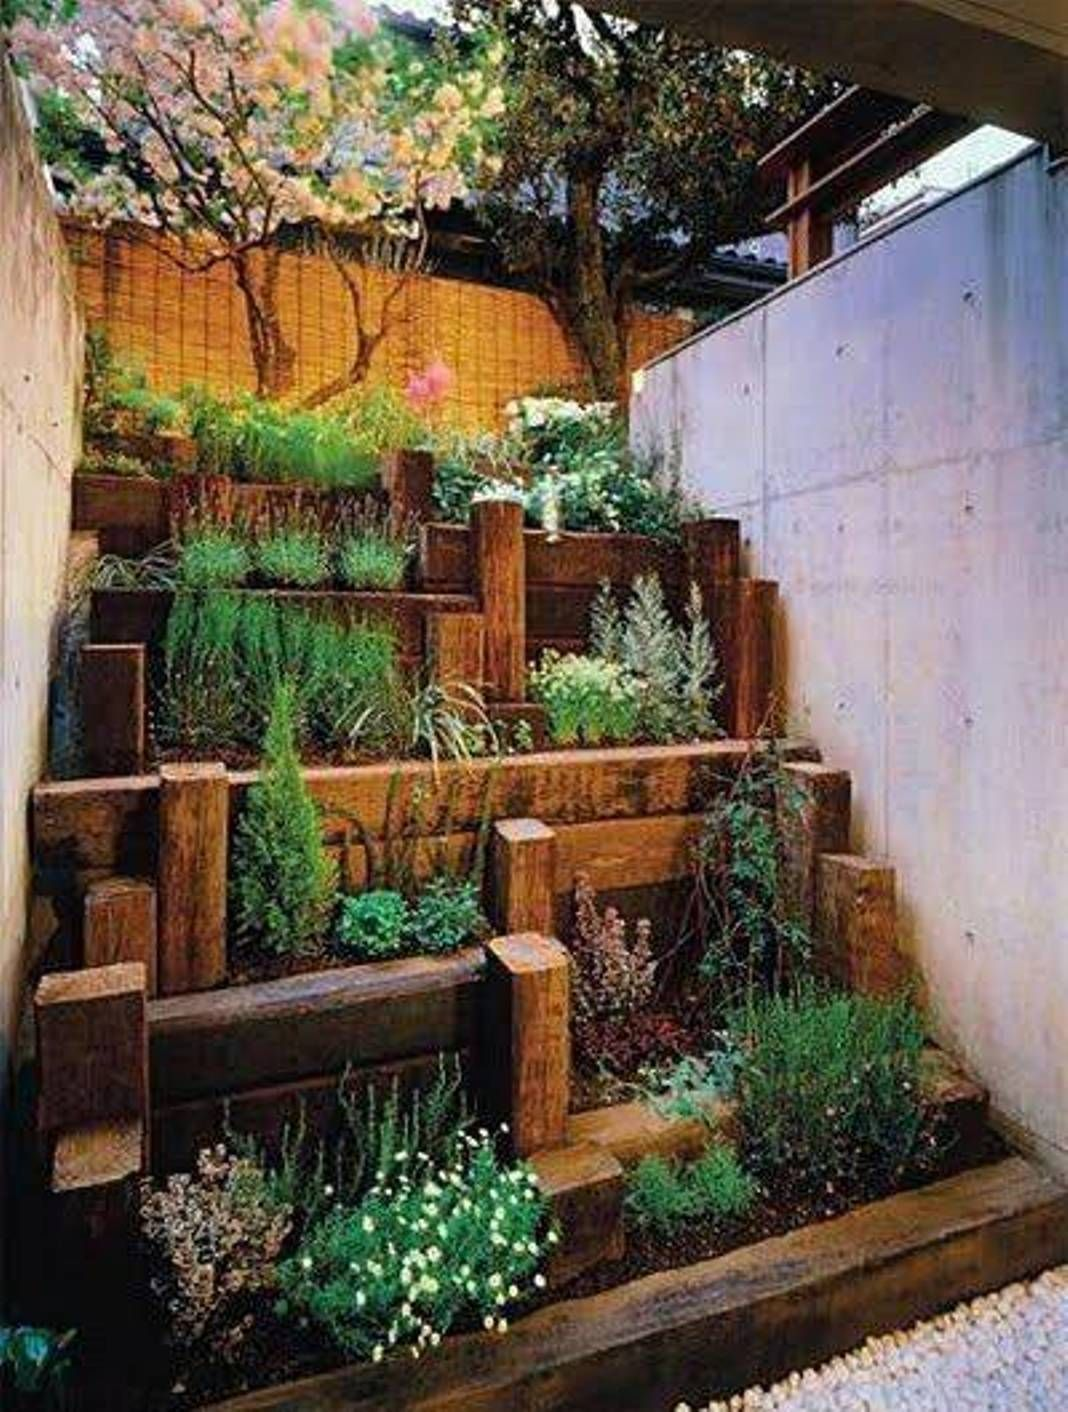 Great idea for a small succulent garden Design More depth than a